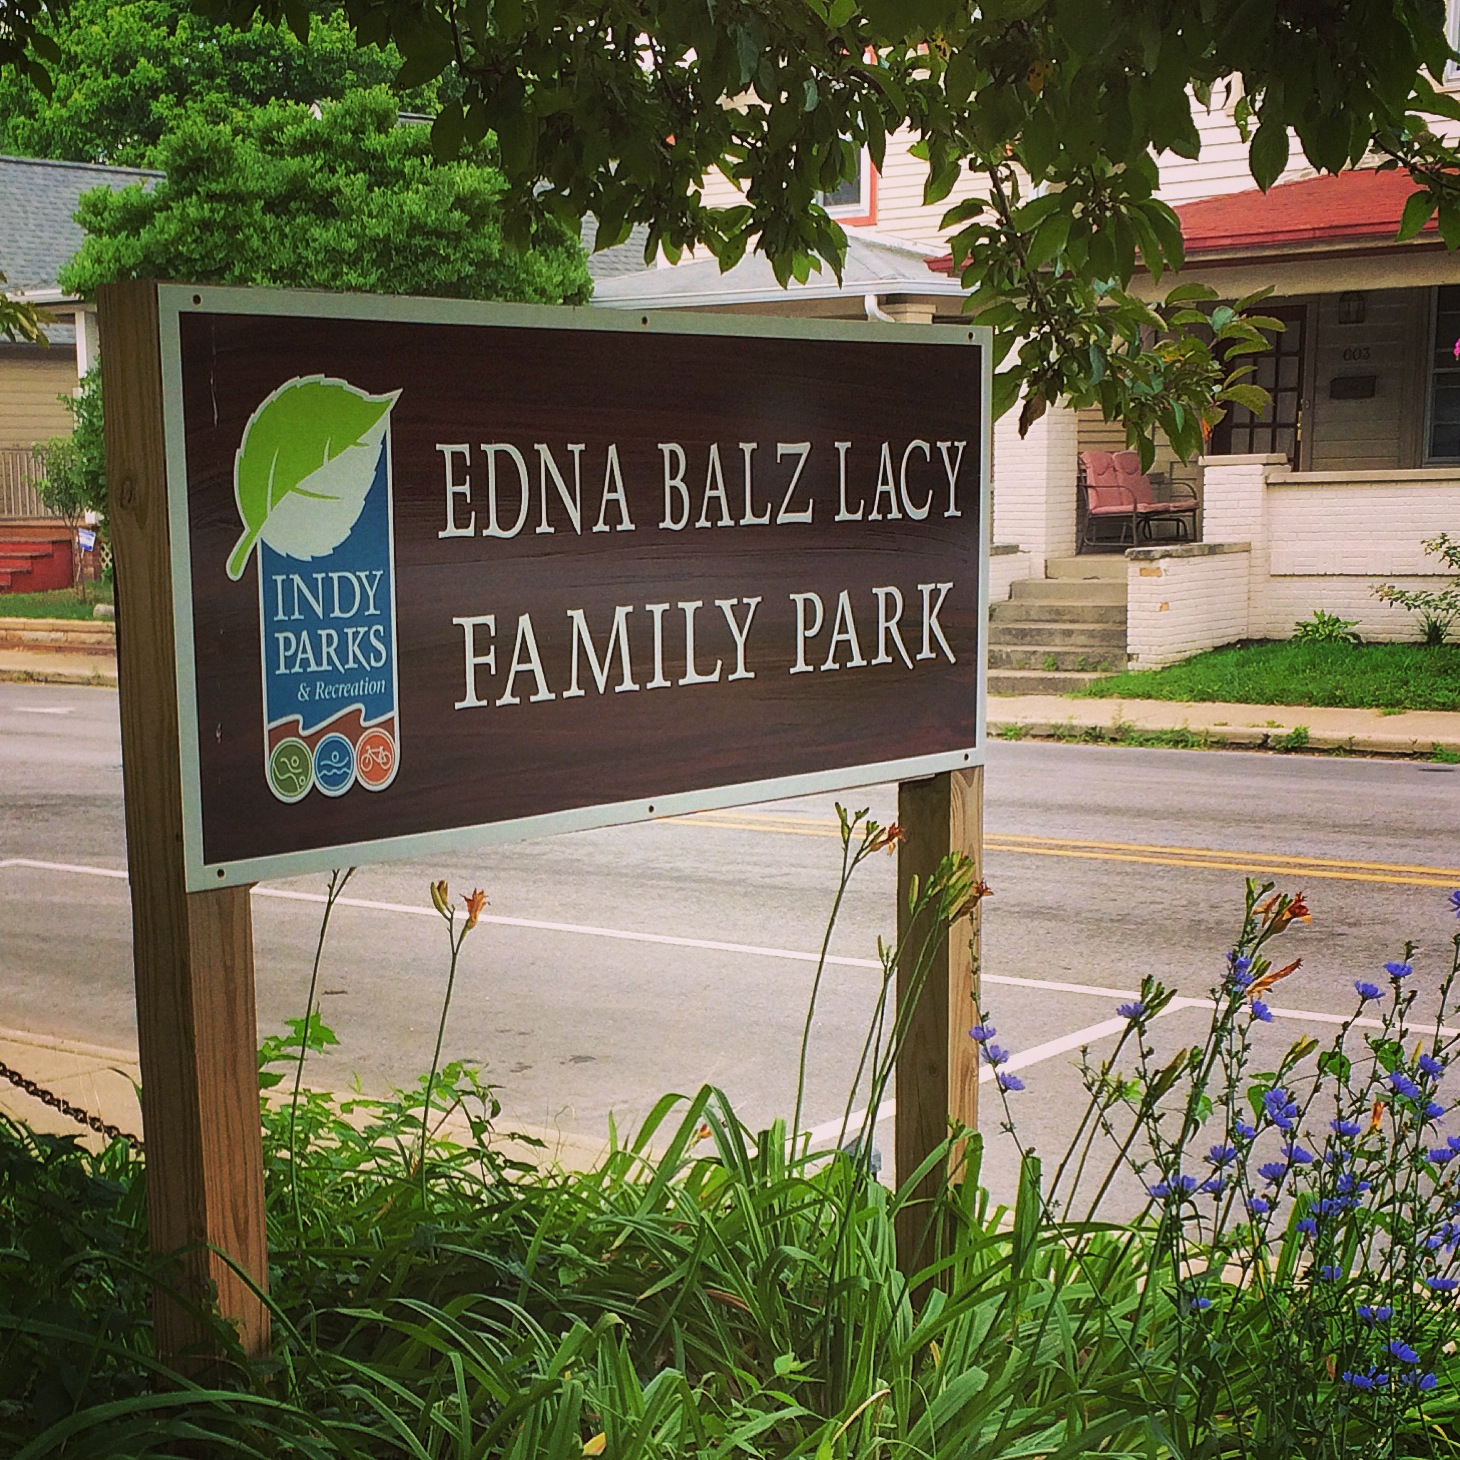 In The Park: Edna Balz Lacy Family Park